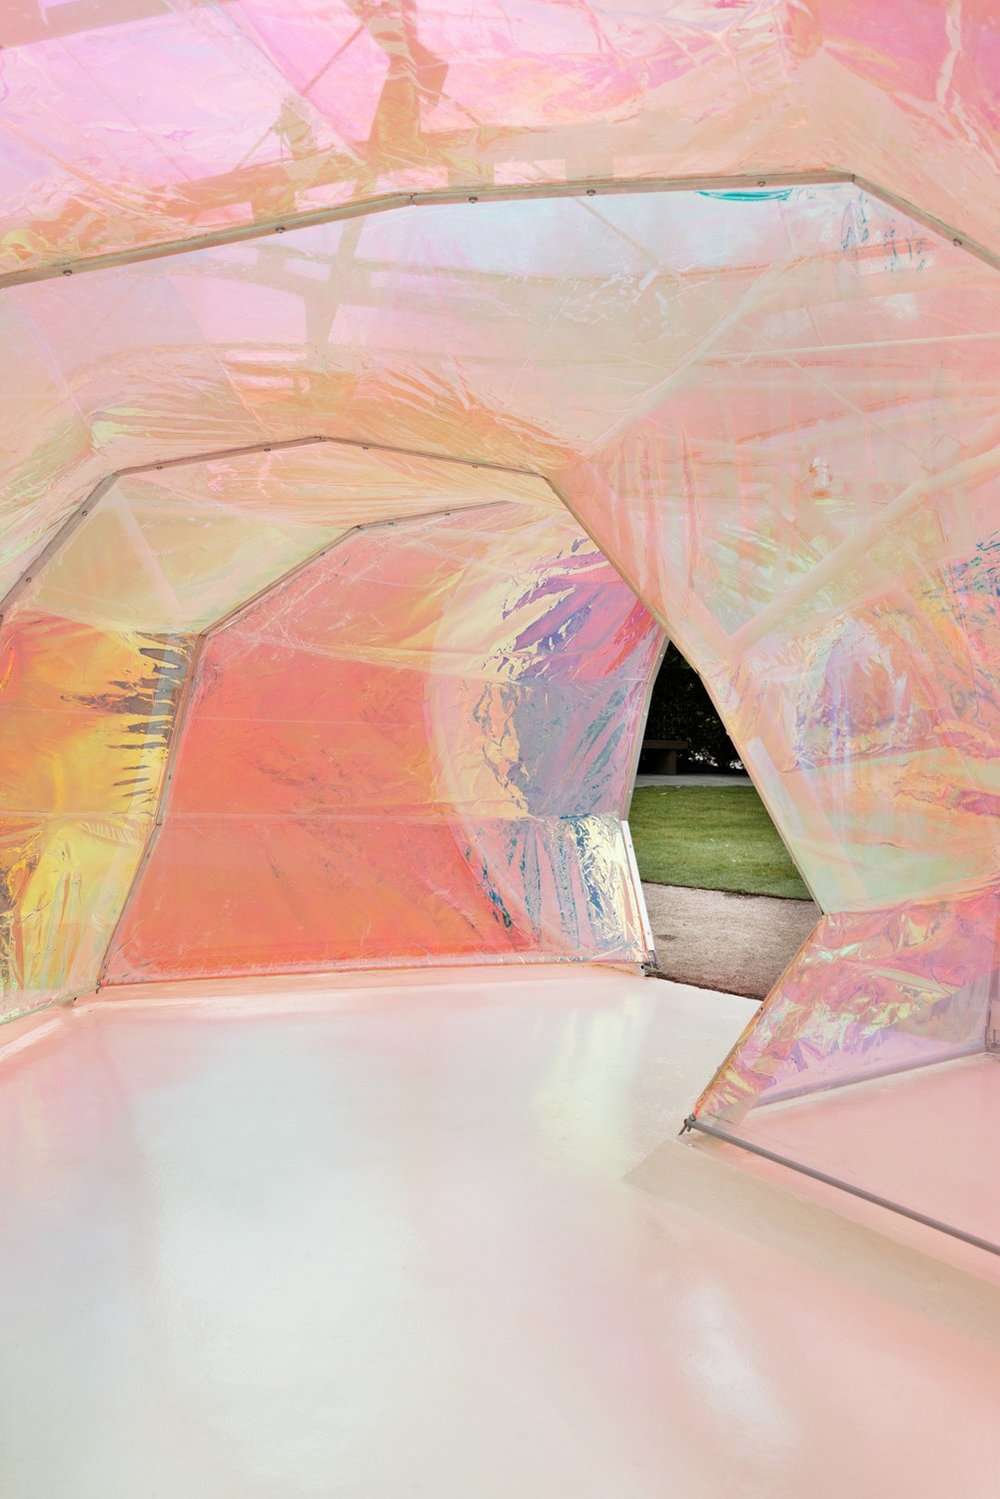 Image 28 of 34   Serpentine Gallery Pavilion 2015 by selgascano